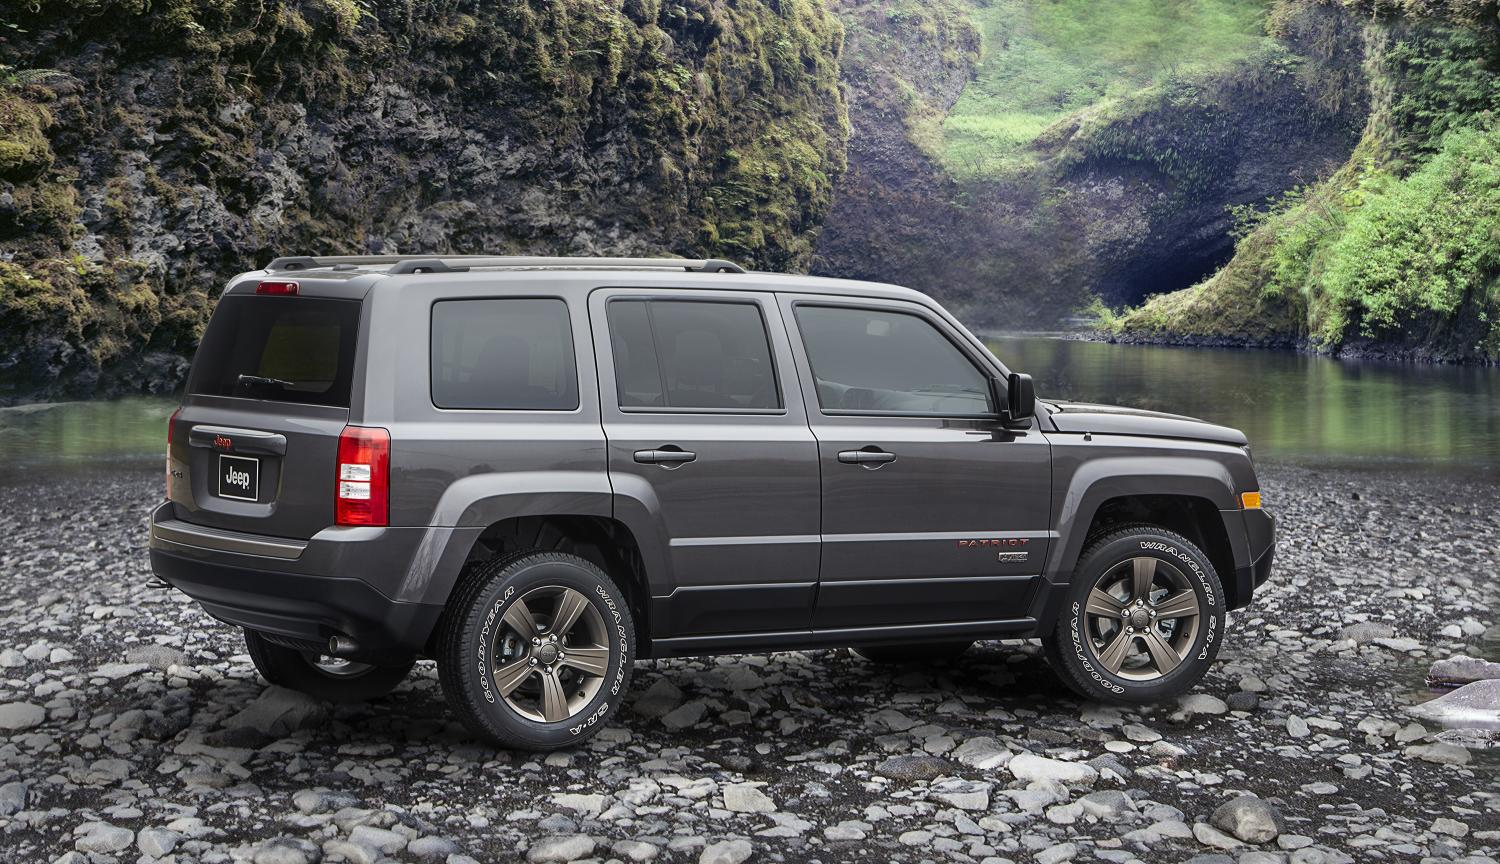 75th anniversary Jeep Patriot pictured in Granite Crystal